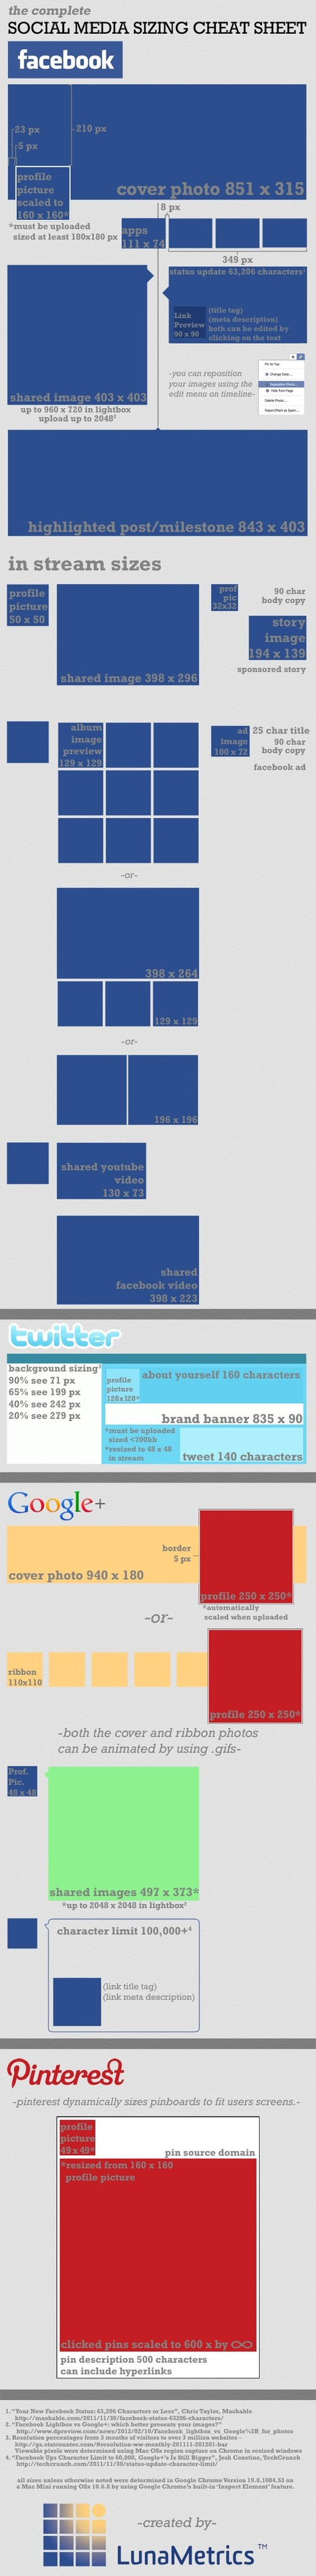 The Complete Social Media Sizing Cheat Sheet [INFOGRAPHIC] | Time to Learn | Scoop.it